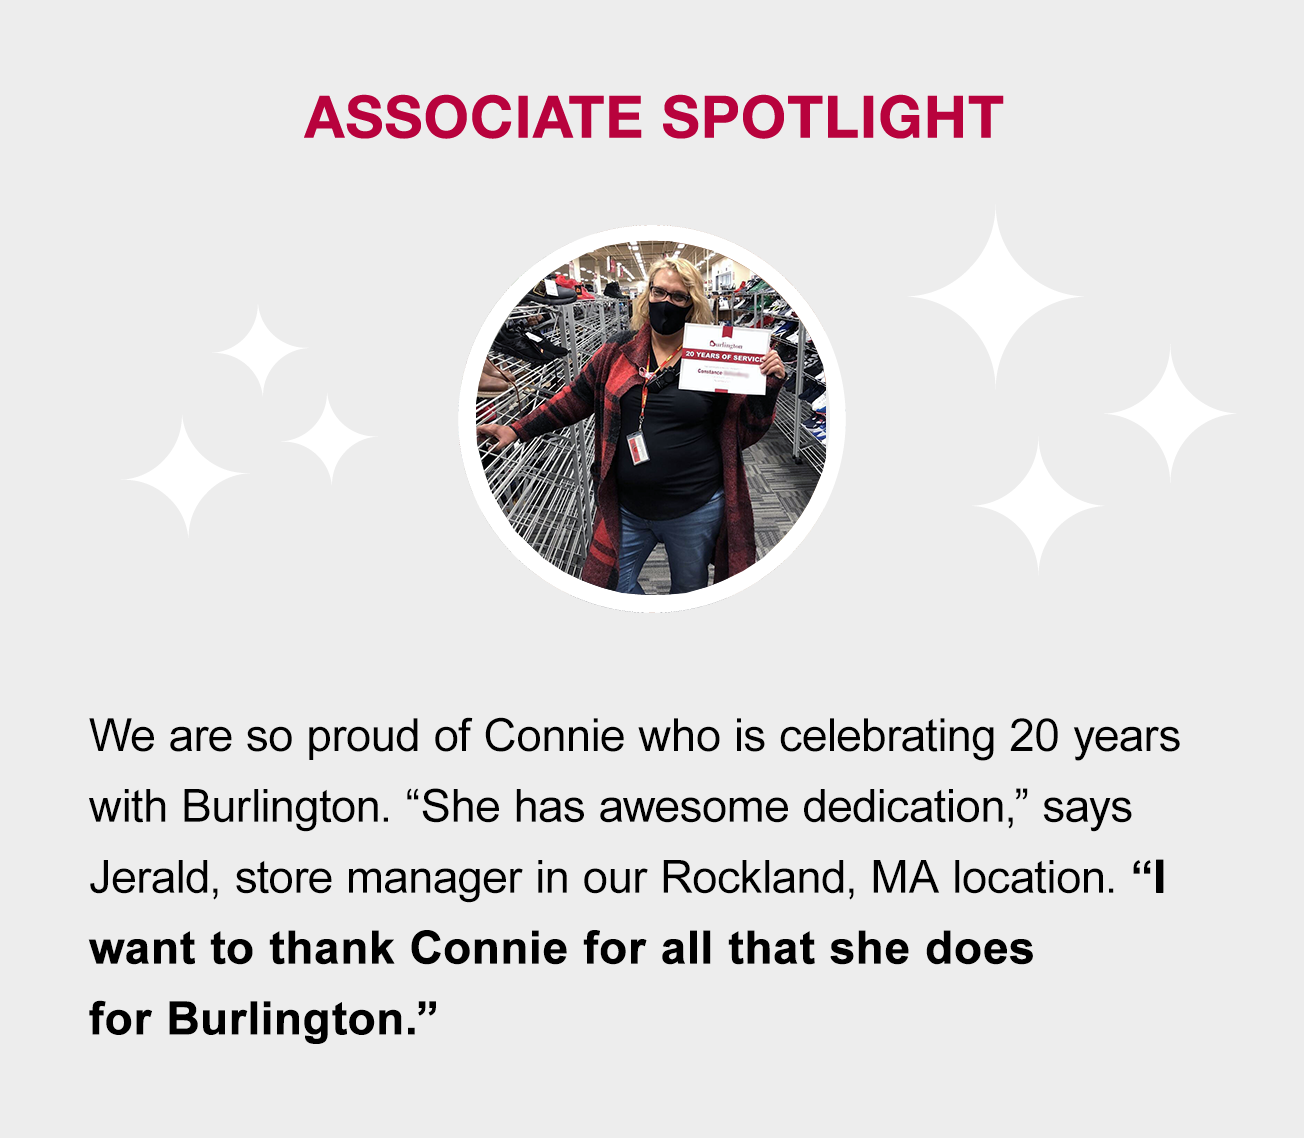 Associate Spotlight. Connie, we really appreciate all that you are doing!